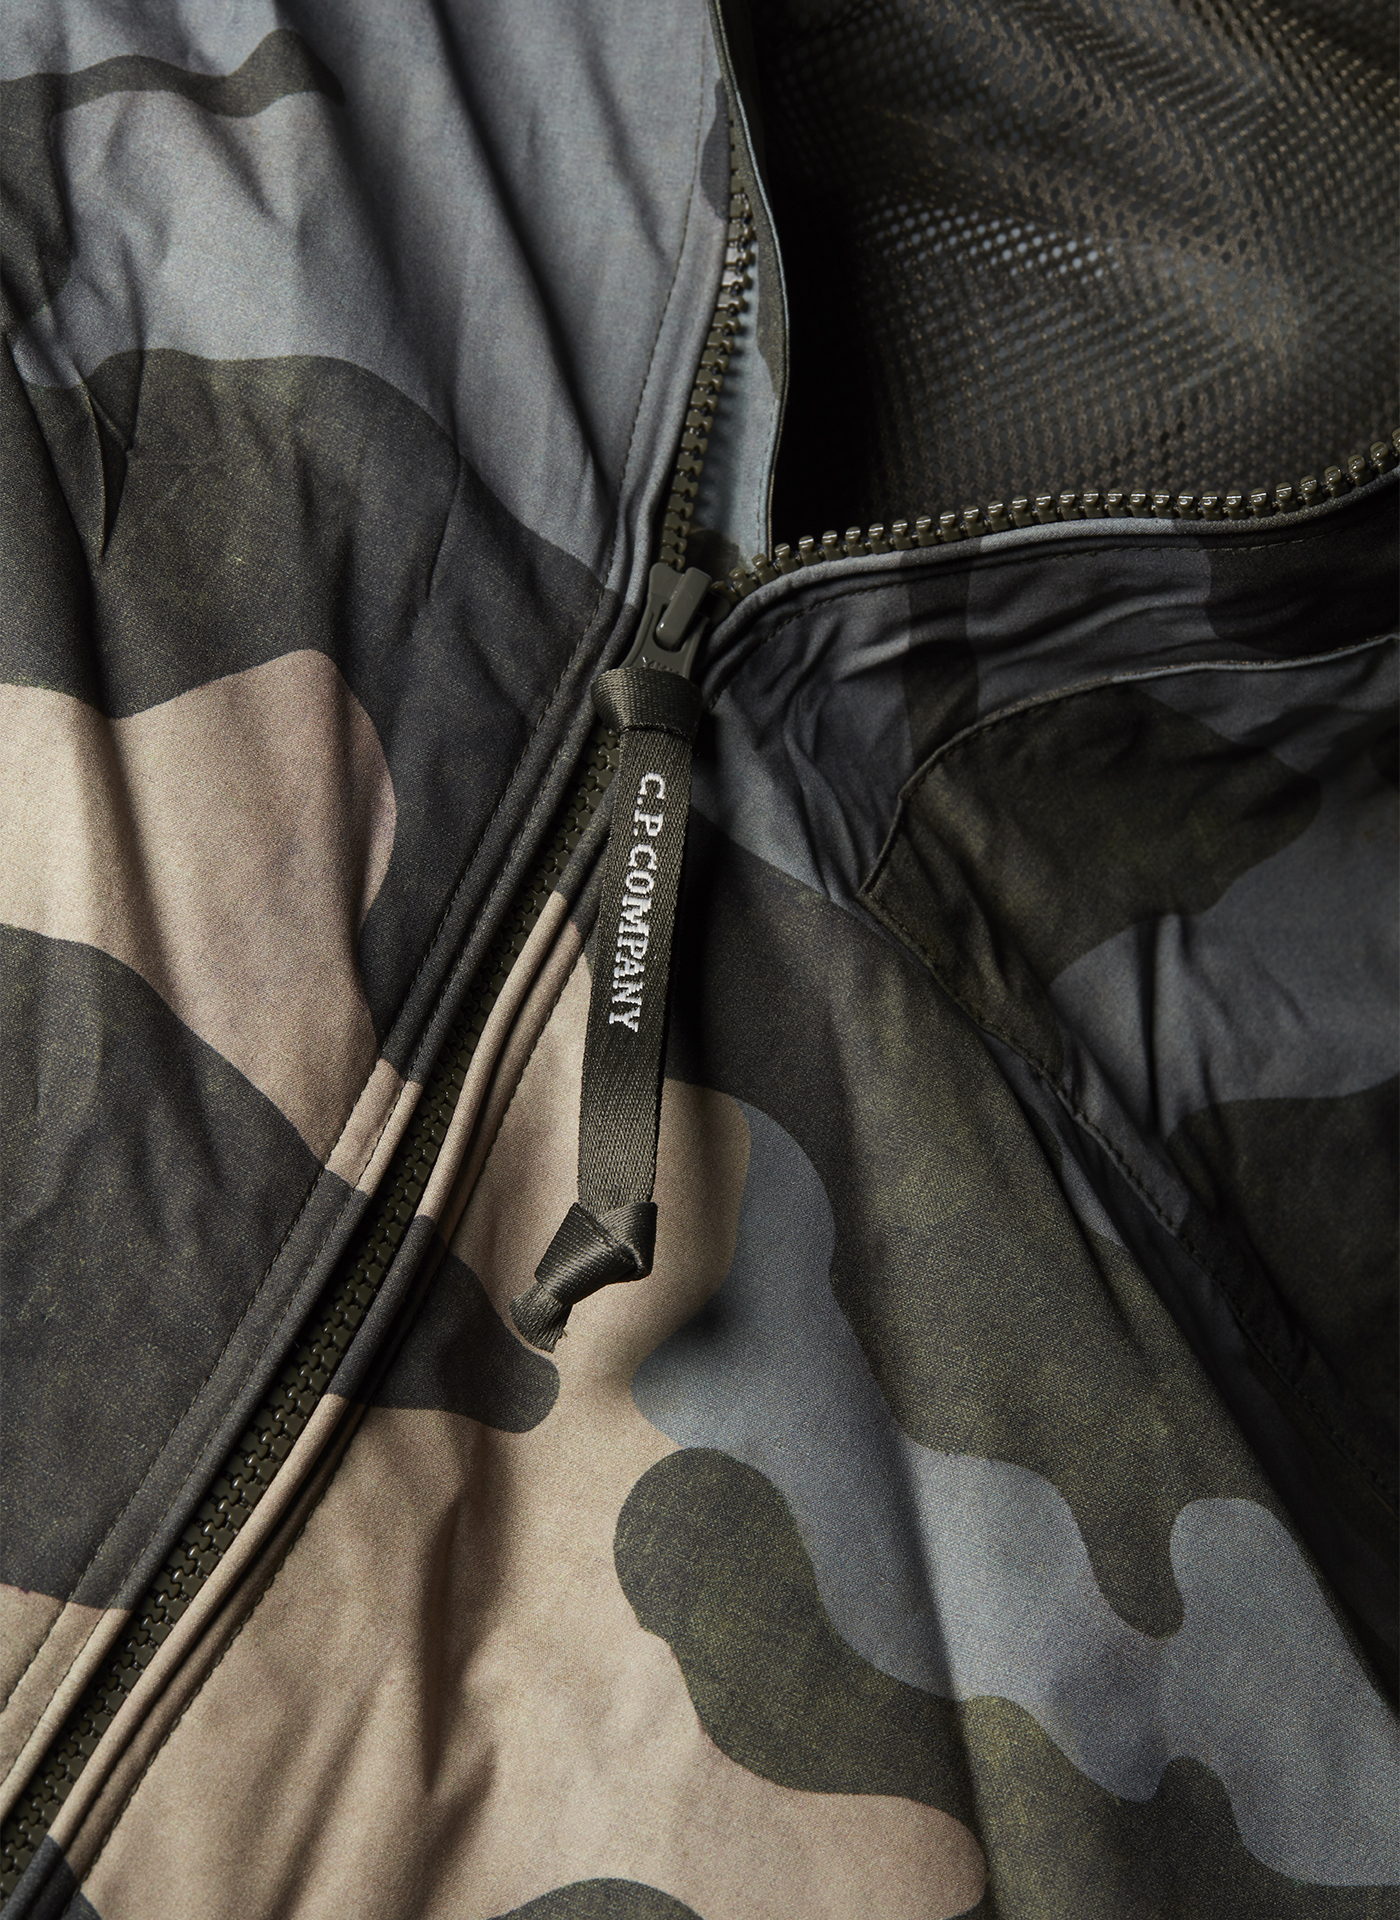 Detail shot of a zipper and collar of a Camo C.P. Company jacket